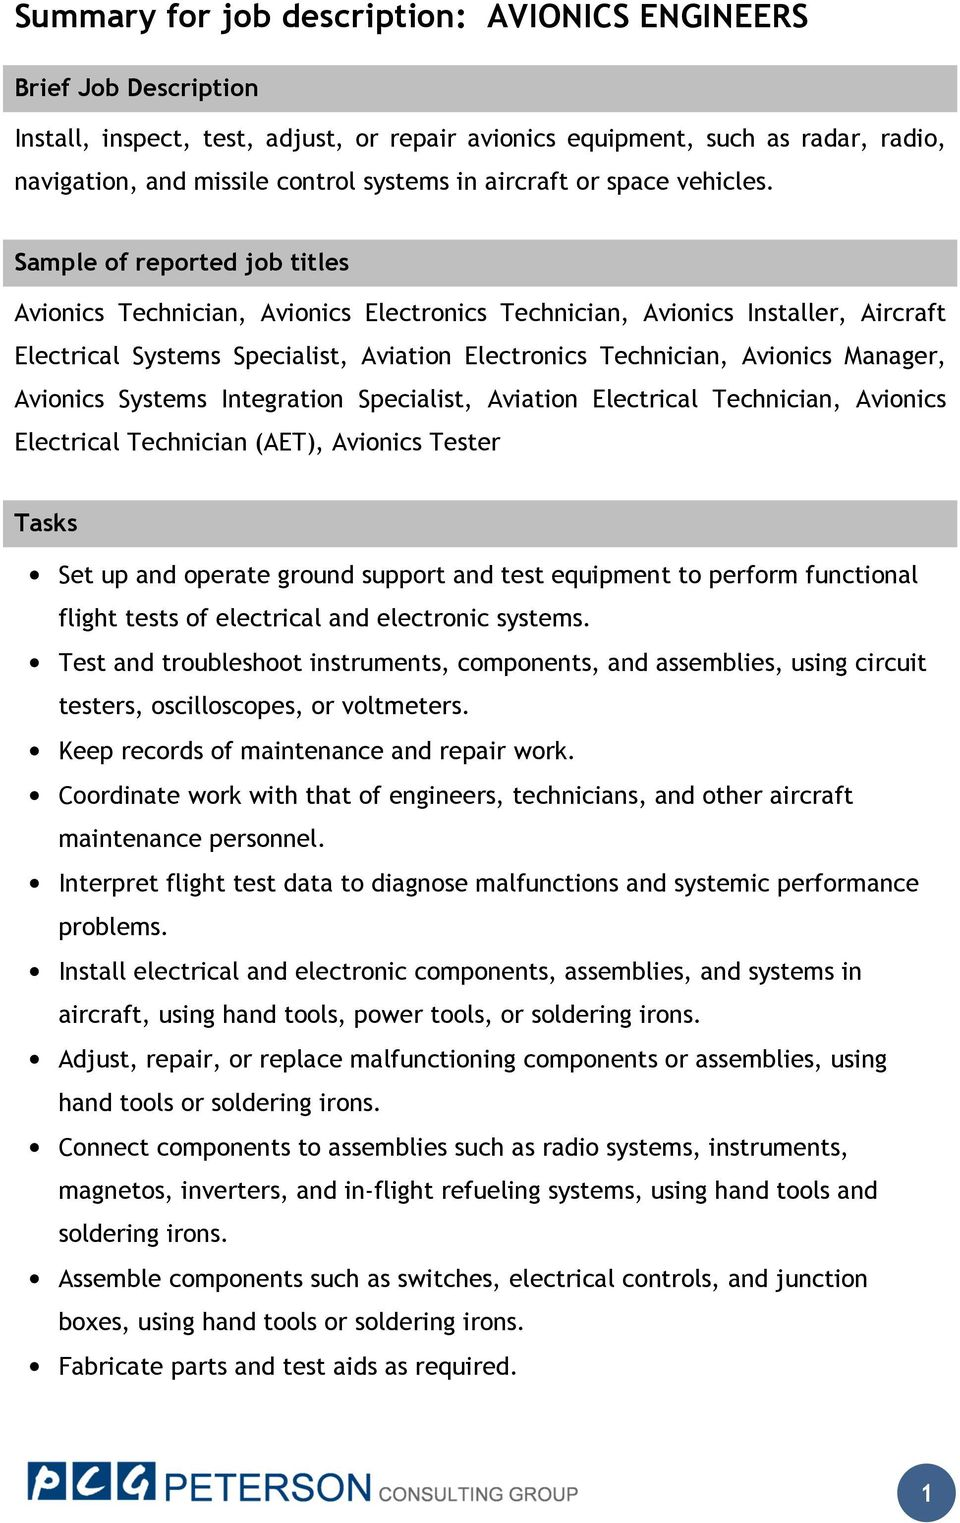 Sample of reported job titles Avionics Technician, Avionics Electronics Technician, Avionics Installer, Aircraft Electrical Systems Specialist, Aviation Electronics Technician, Avionics Manager,